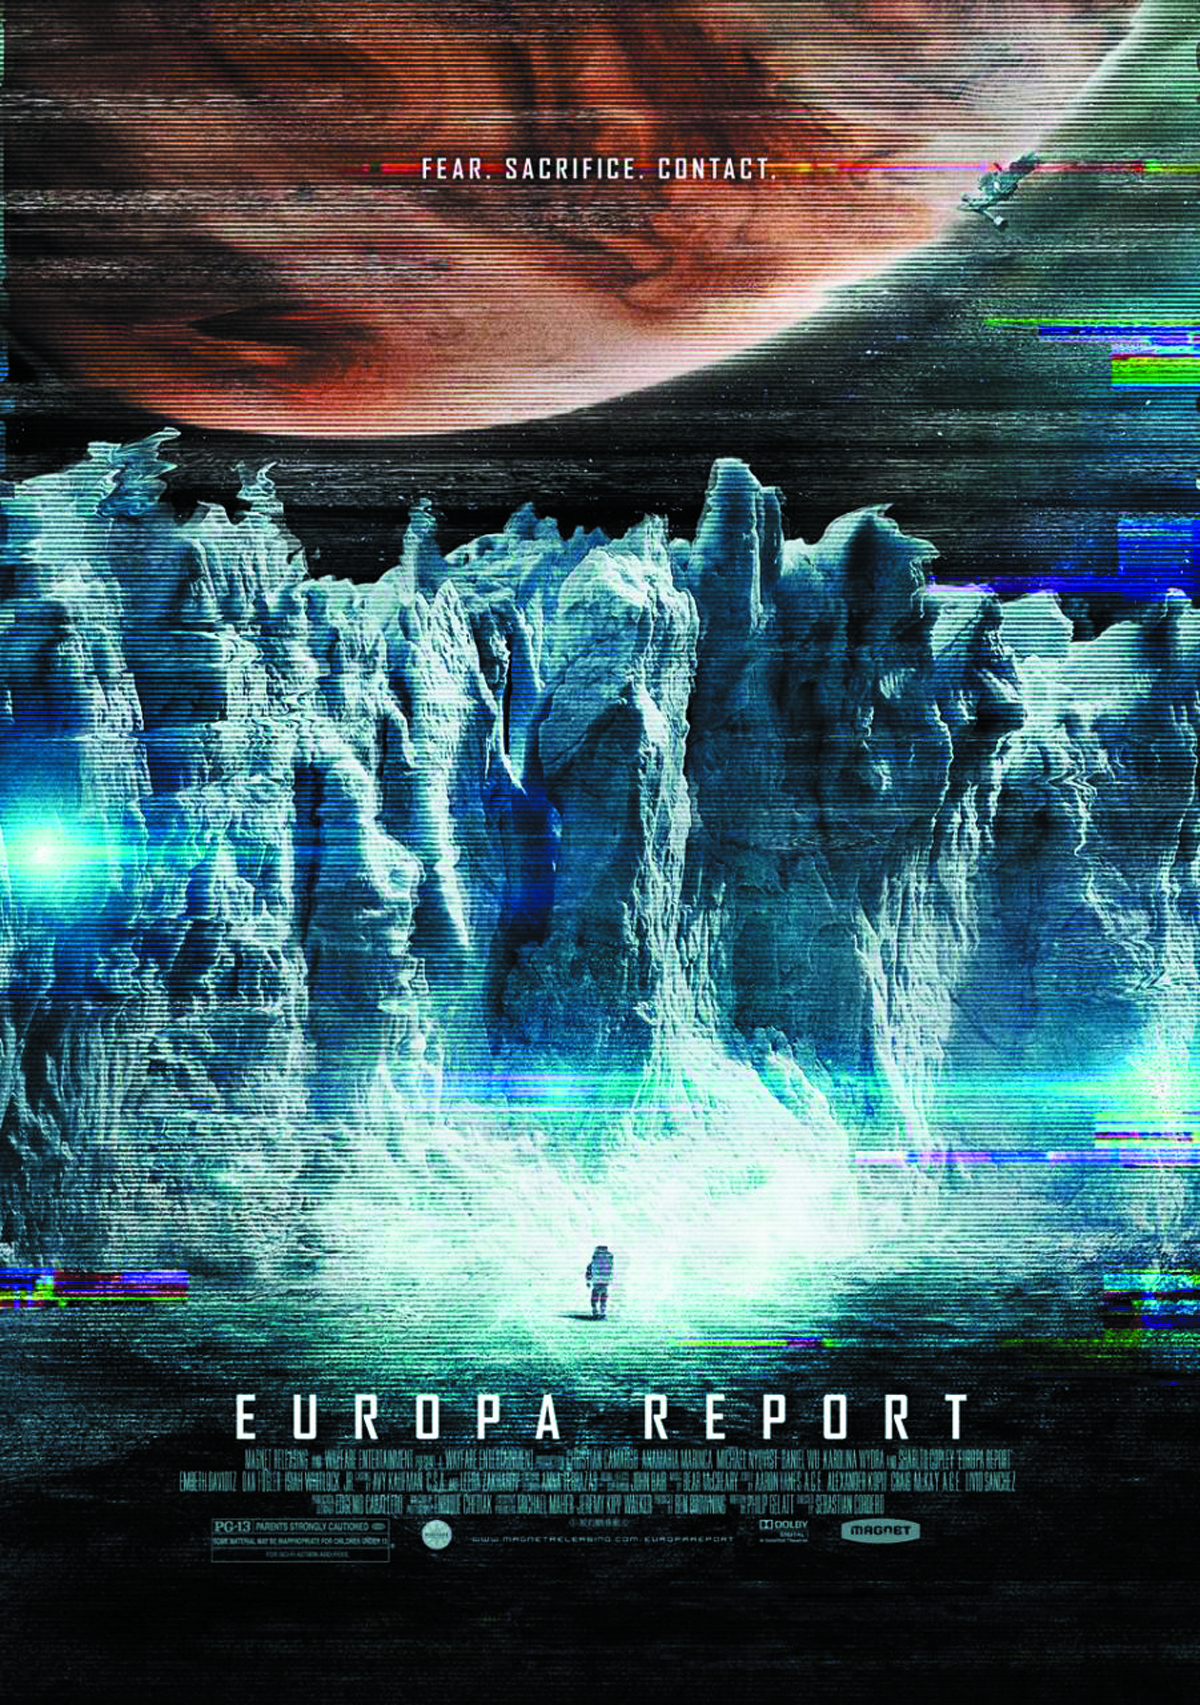 EUROPA REPORT BD